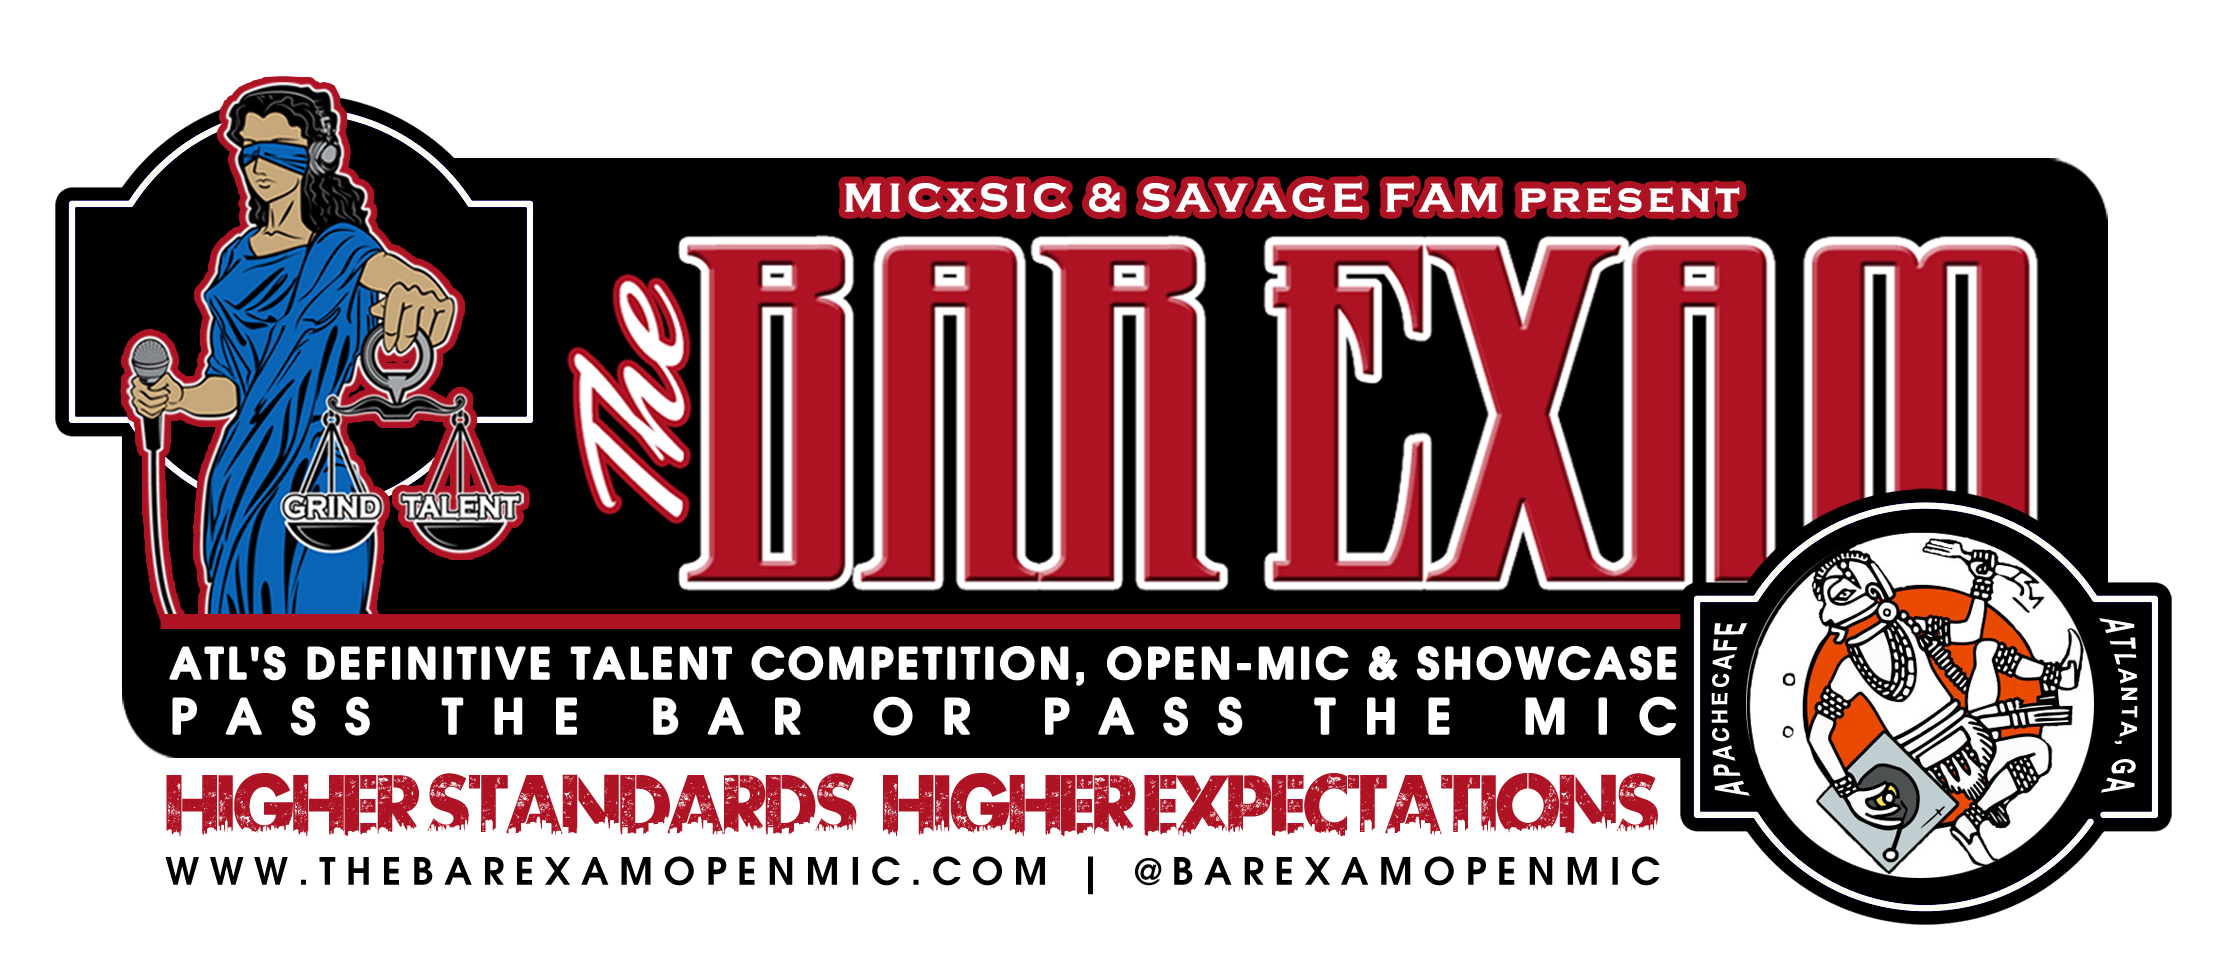 ATL's definitive talent competition & showcase